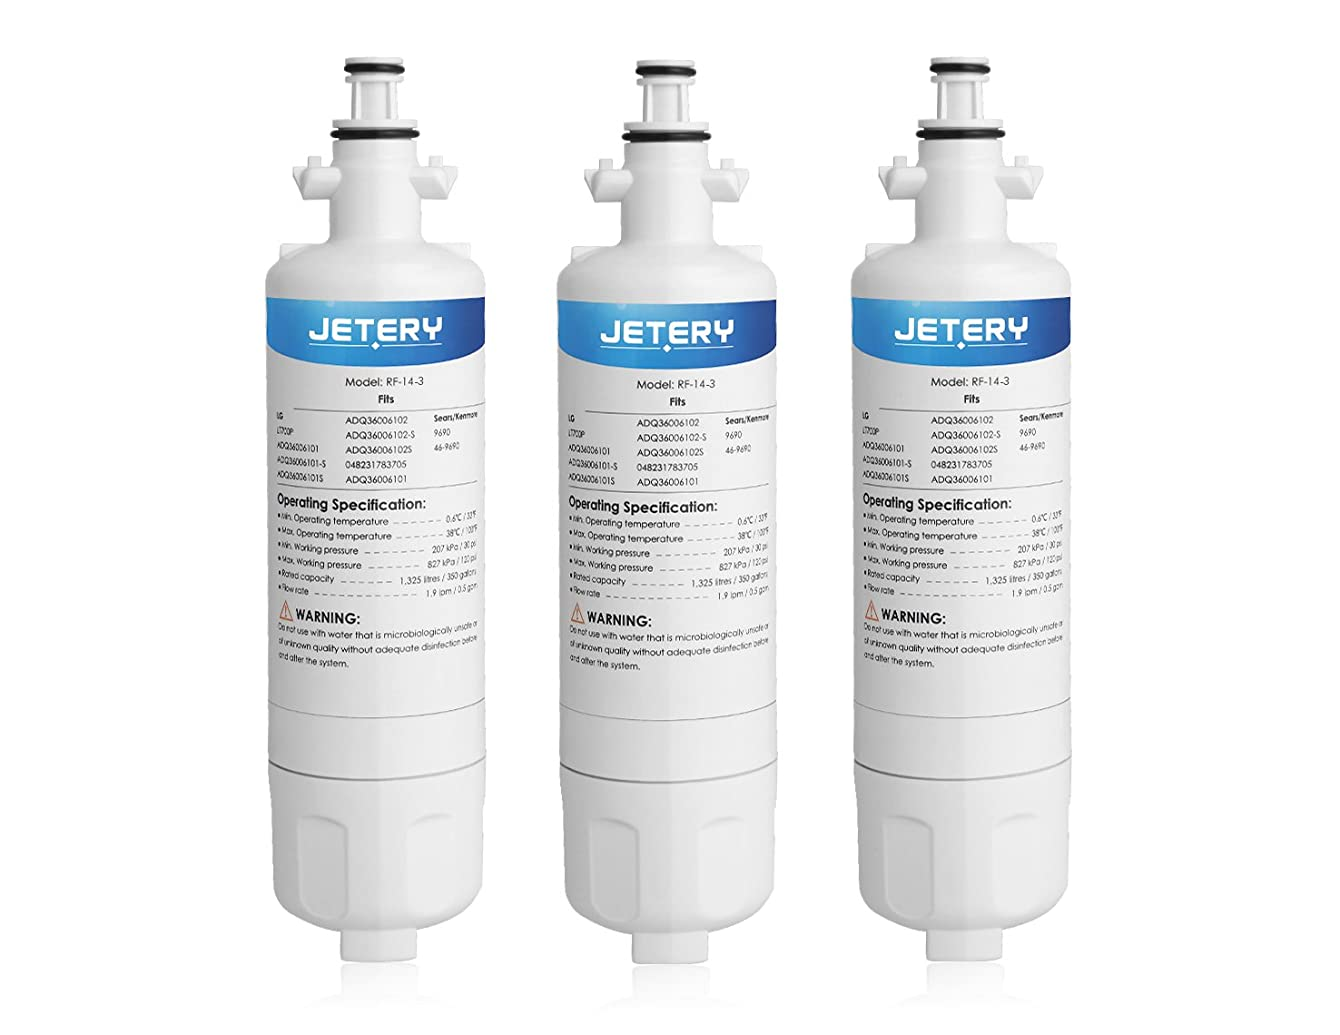 3 Pack LG LT700P Replacement Refrigerator Water Filter, JETERY Compatible With Fridge ADQ36006101 ADQ36006102, Kenmore 9690 46-9690